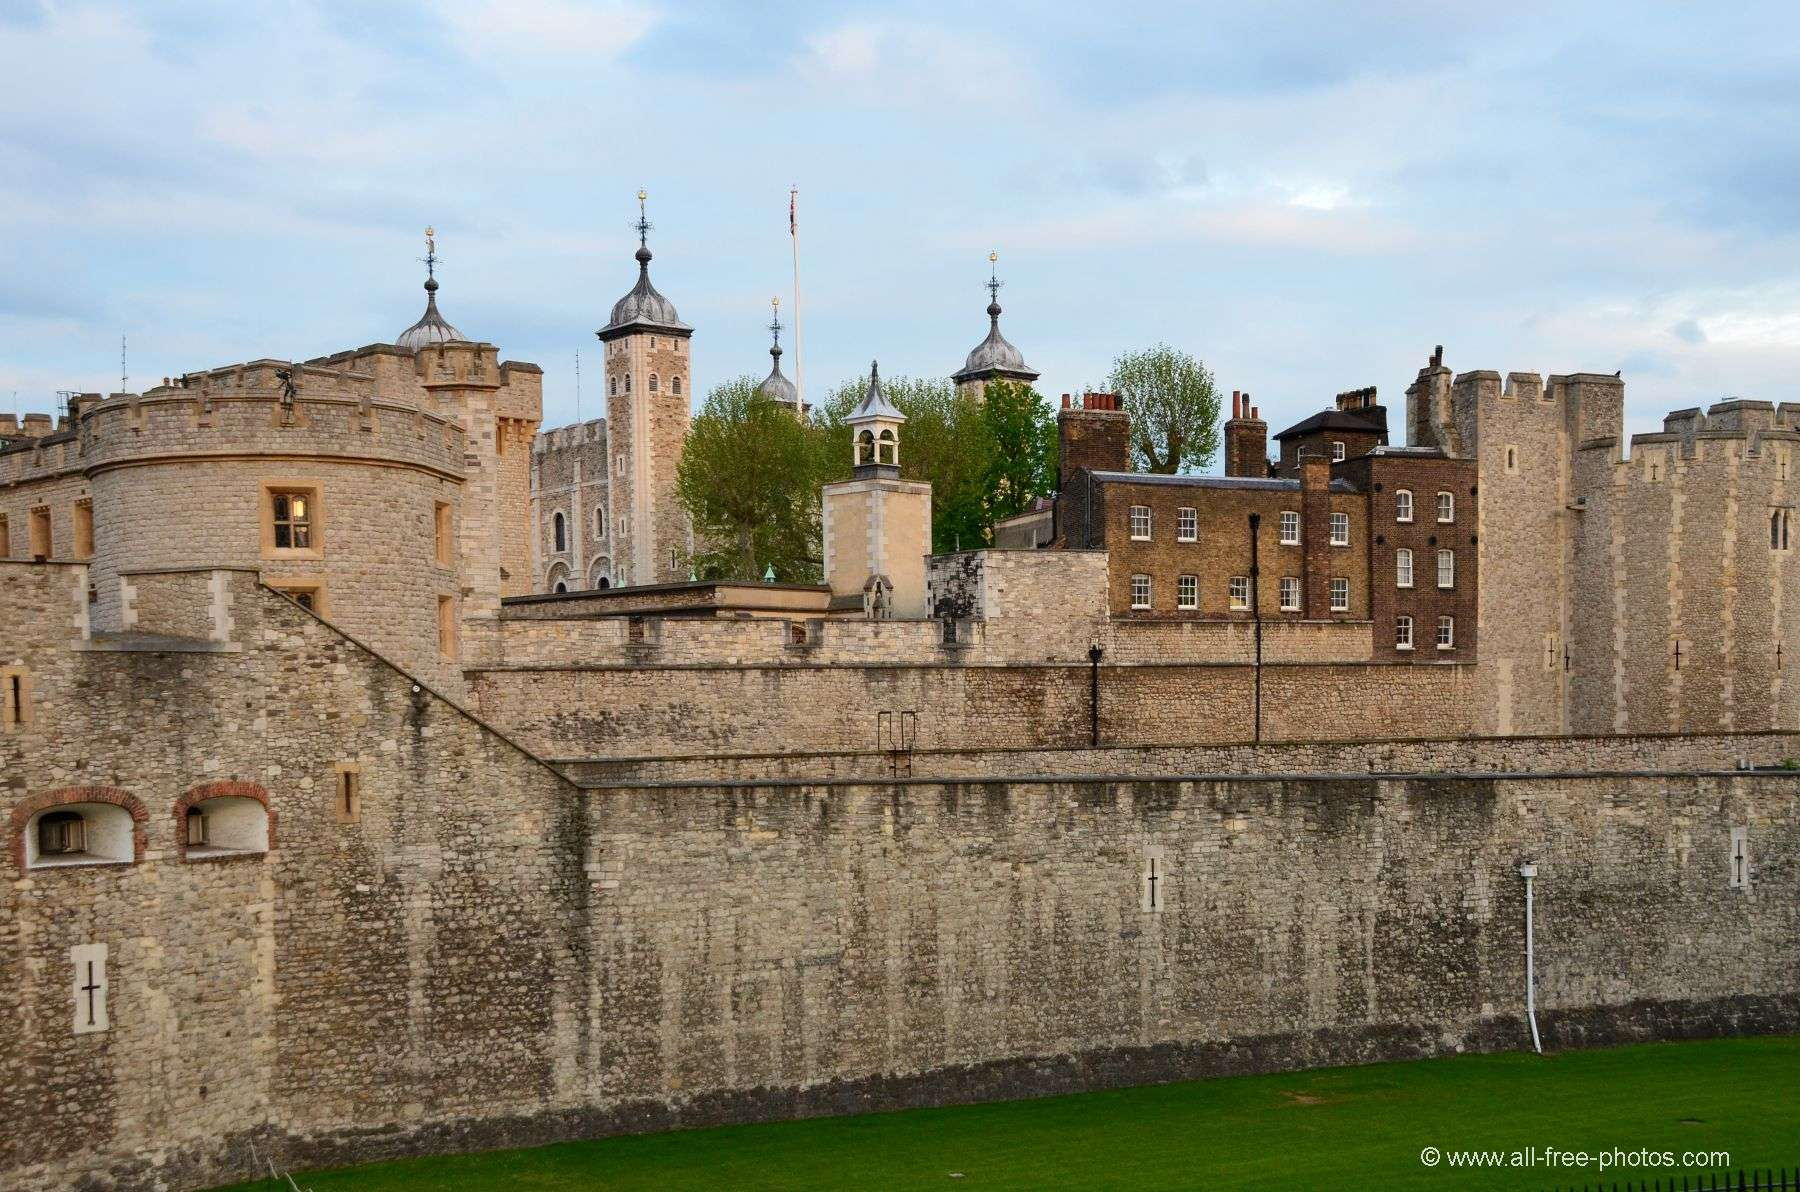 Tower of London - United Kingdom